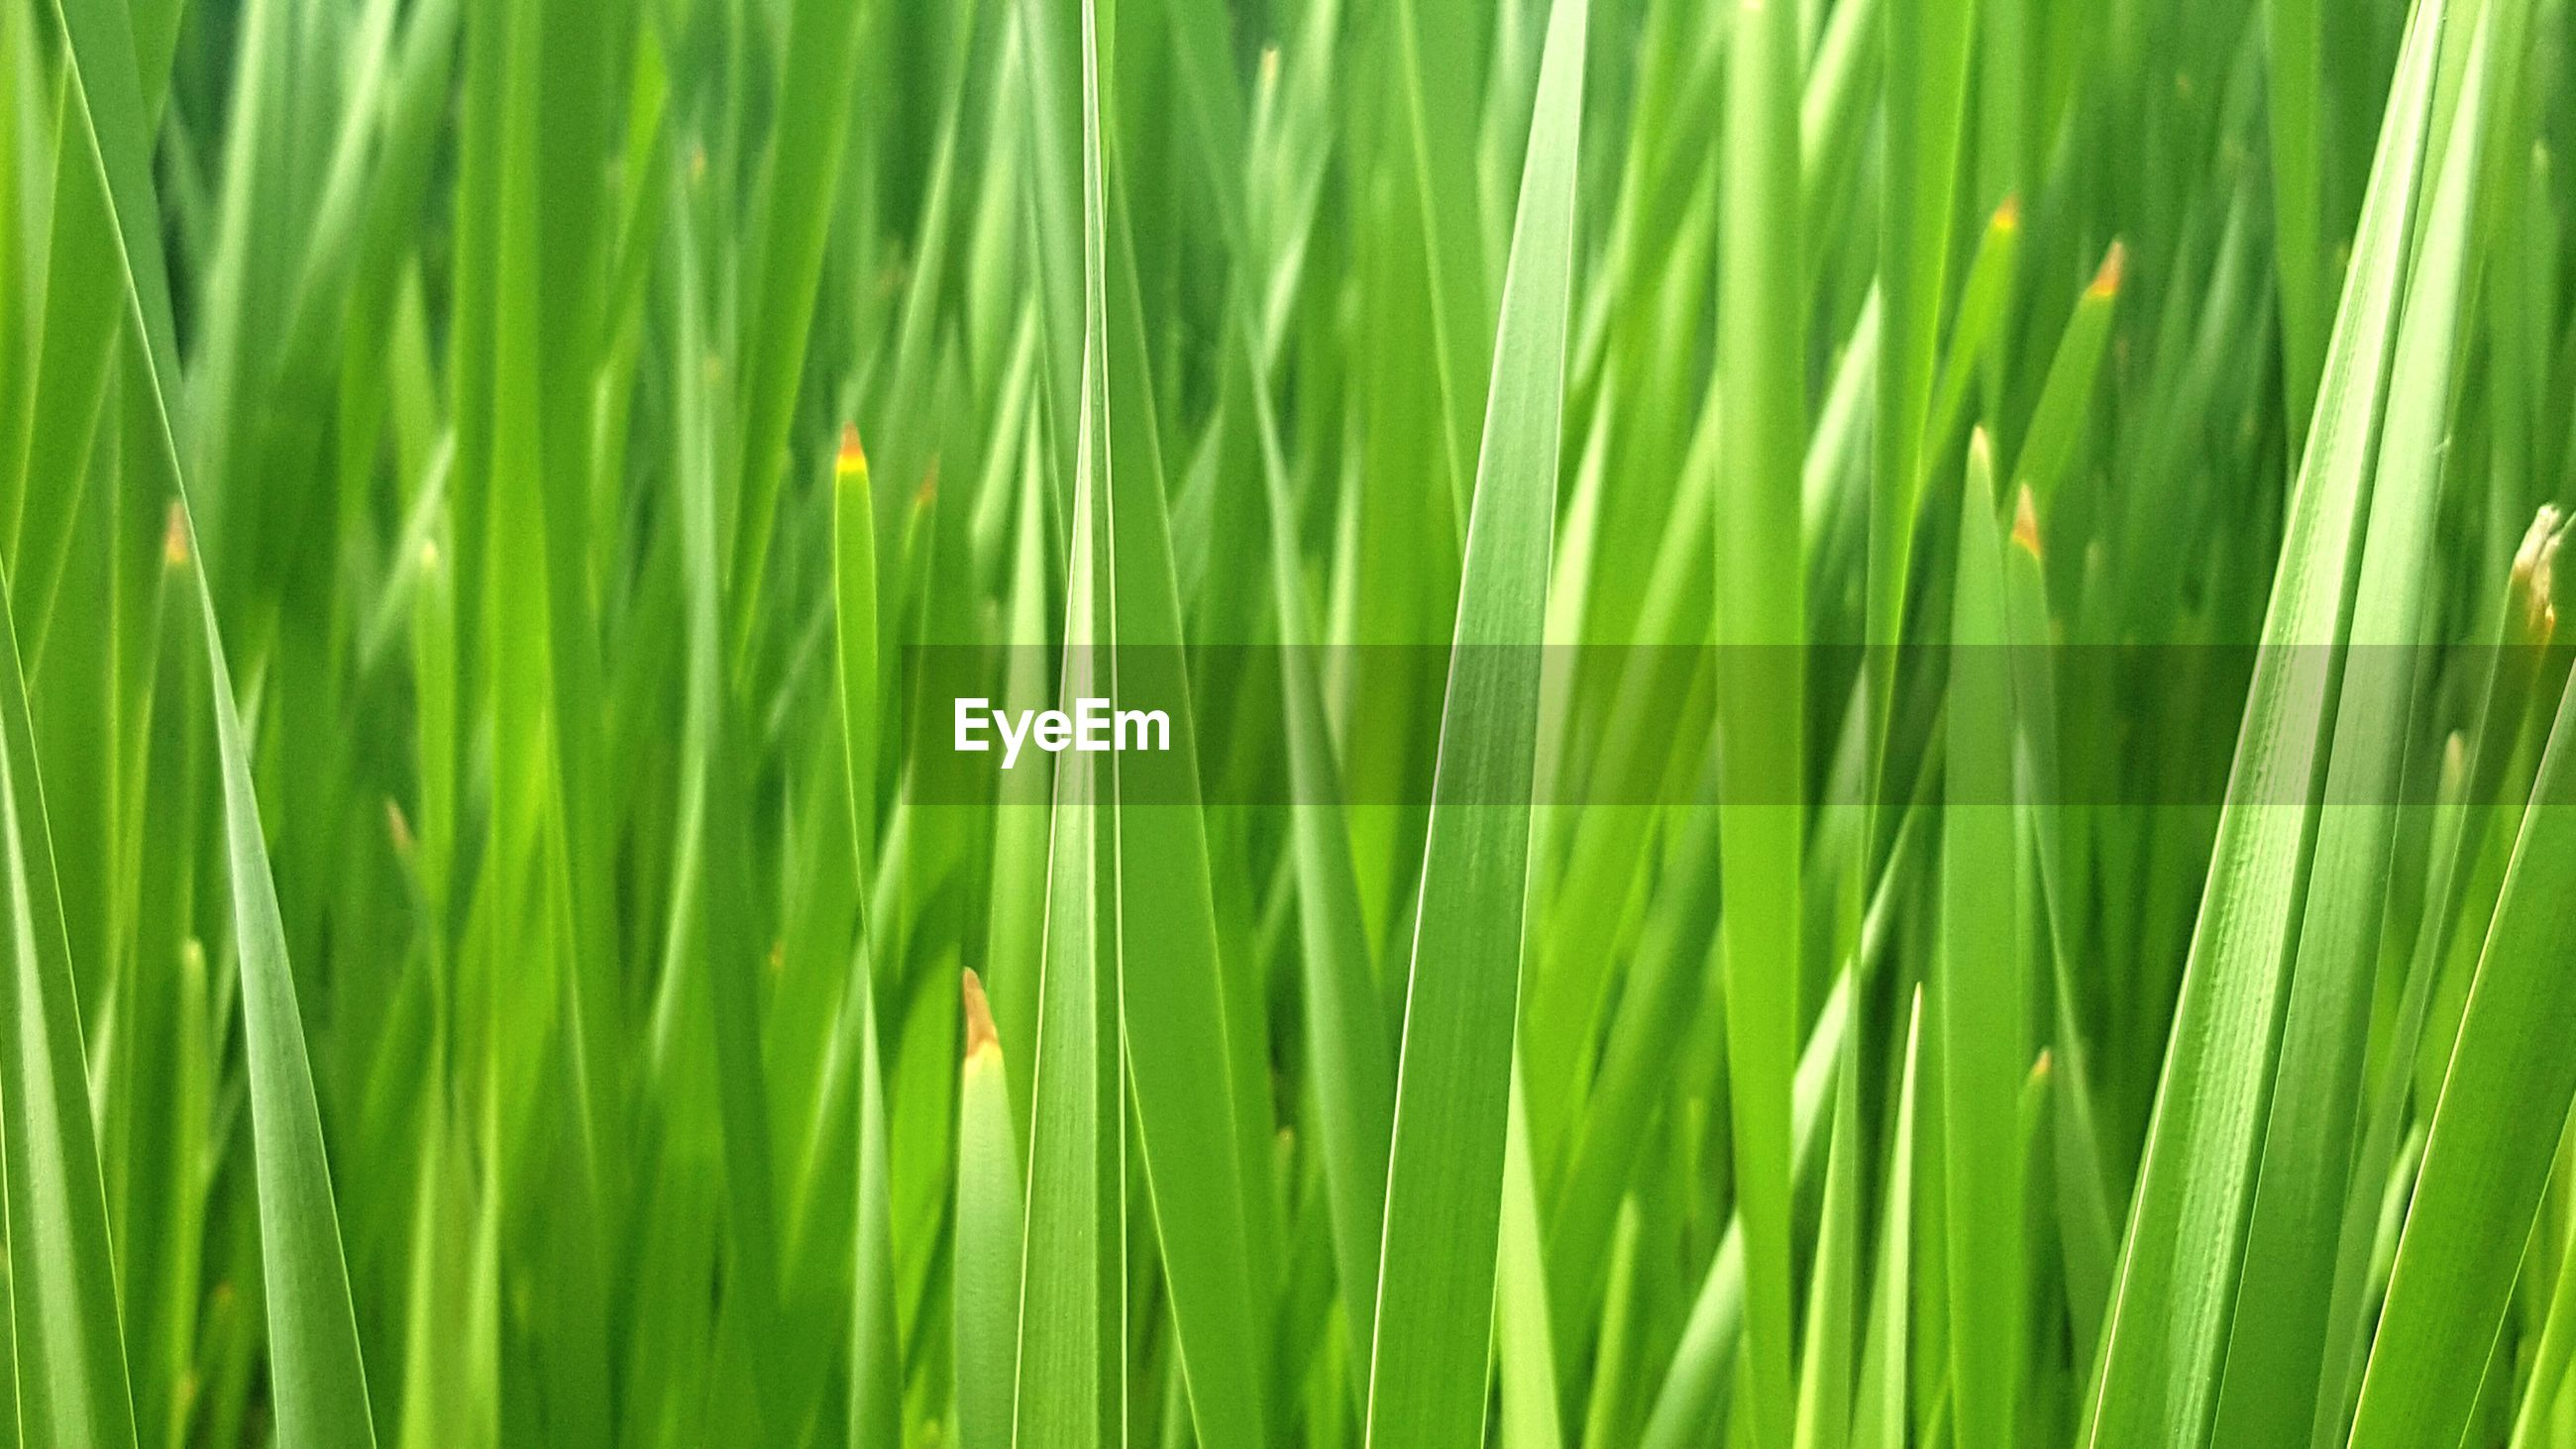 green color, full frame, growth, backgrounds, nature, beauty in nature, close-up, freshness, grass, drop, green, leaf, plant, wet, tranquility, water, field, lush foliage, day, blade of grass